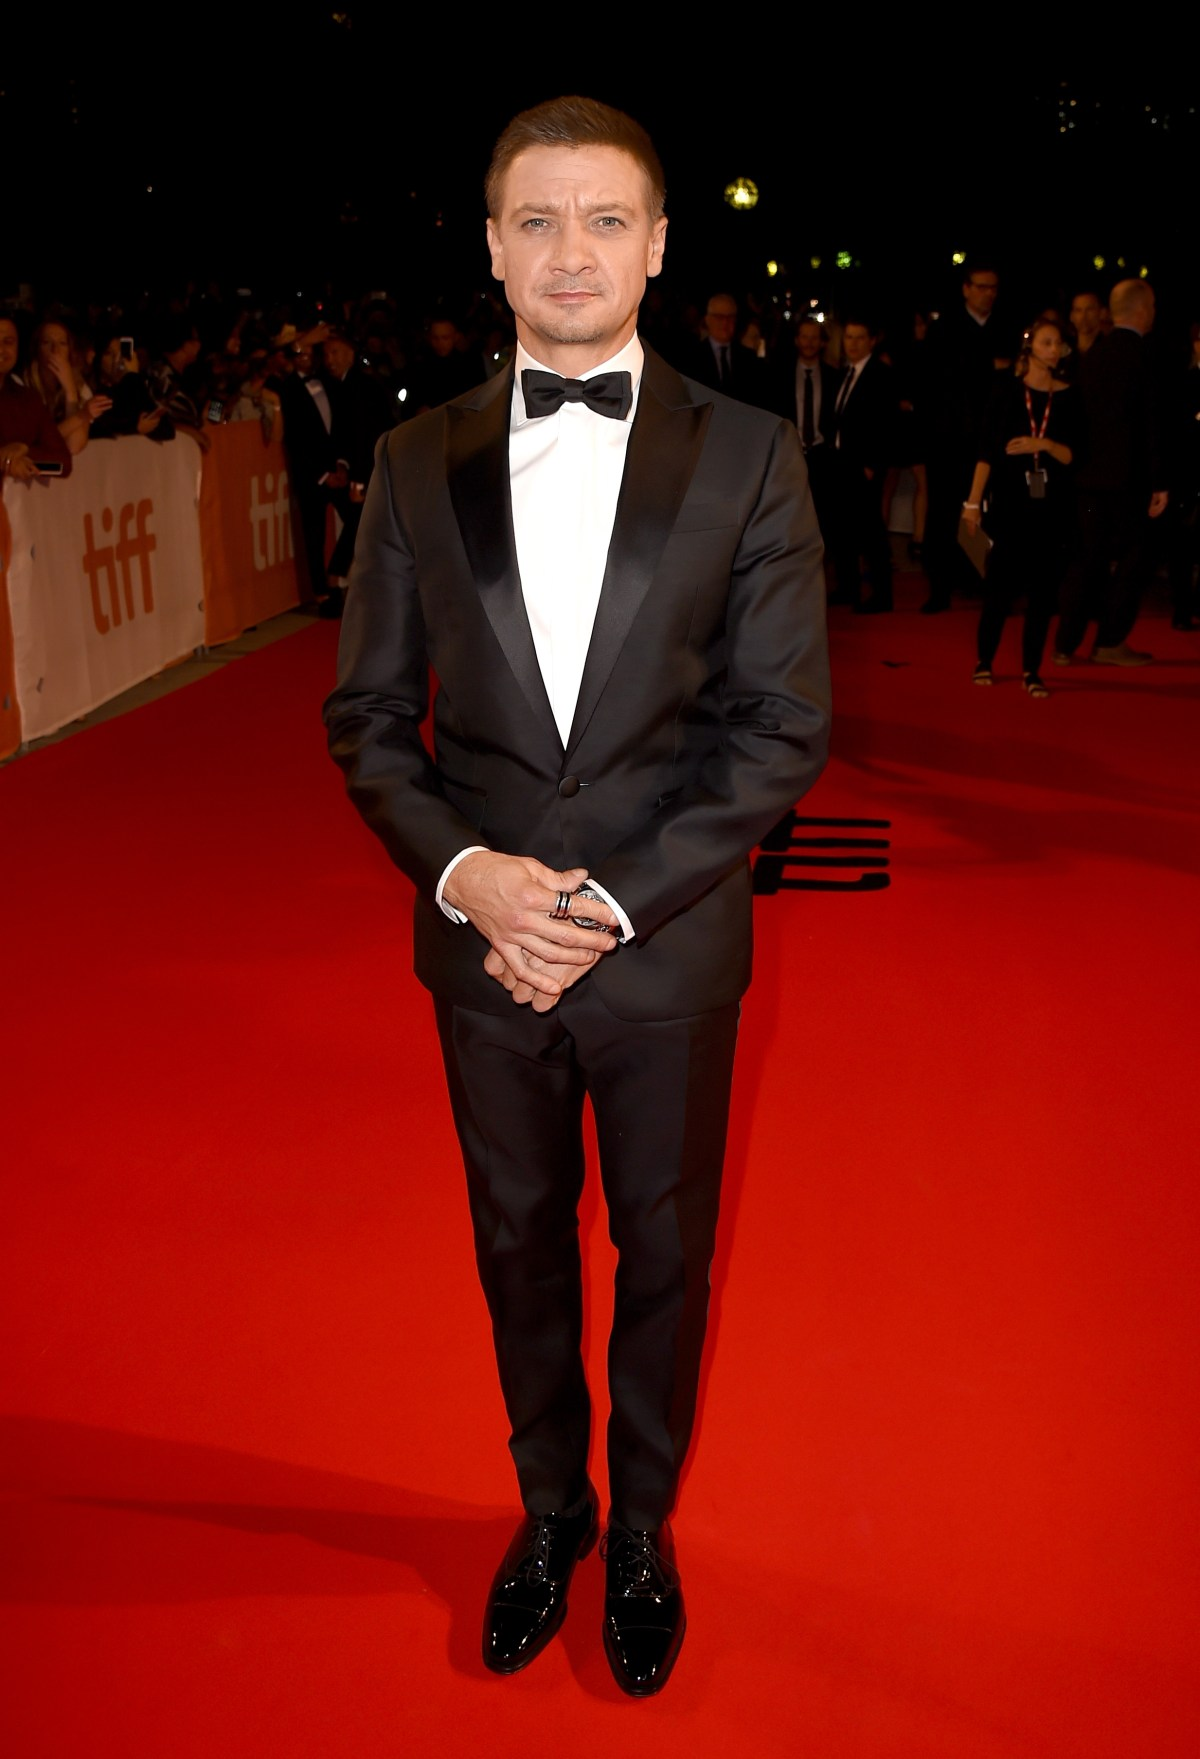 """TORONTO, ON - SEPTEMBER 12:  Actor Jeremy Renner attends the """"Arrival"""" premiere during the 2016 Toronto International Film Festival at Roy Thomson Hall on September 12, 2016 in Toronto, Canada.  (Photo by Kevin Winter/Getty Images)"""